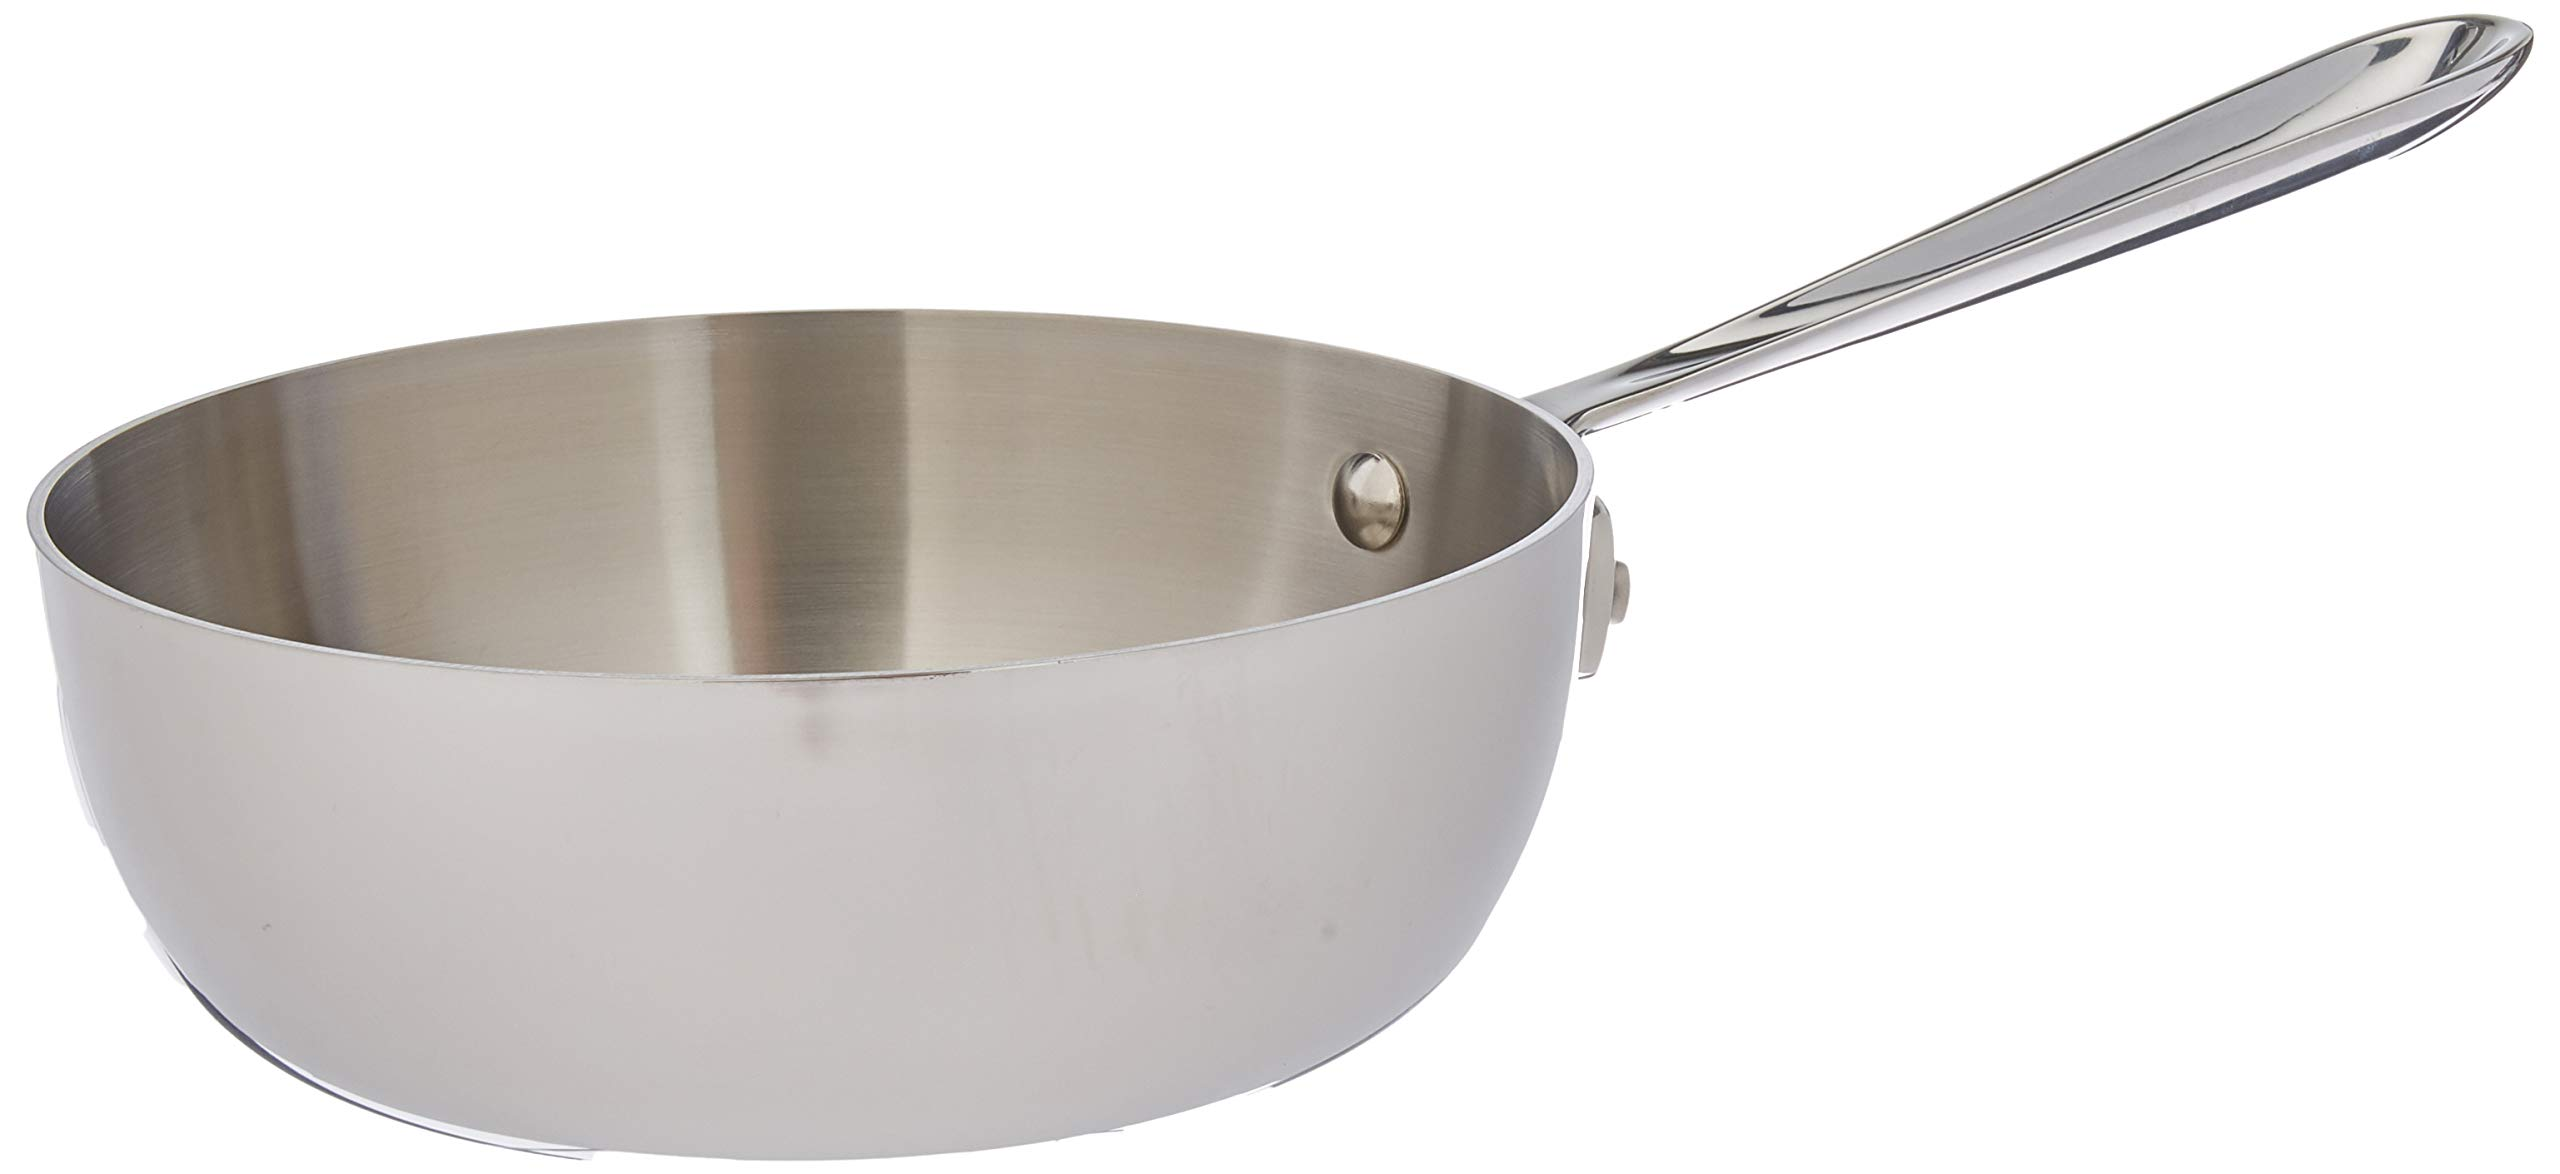 All-Clad Lid 4212 No Whisk D3 Saucier, 2-Quart, Silver by All-Clad